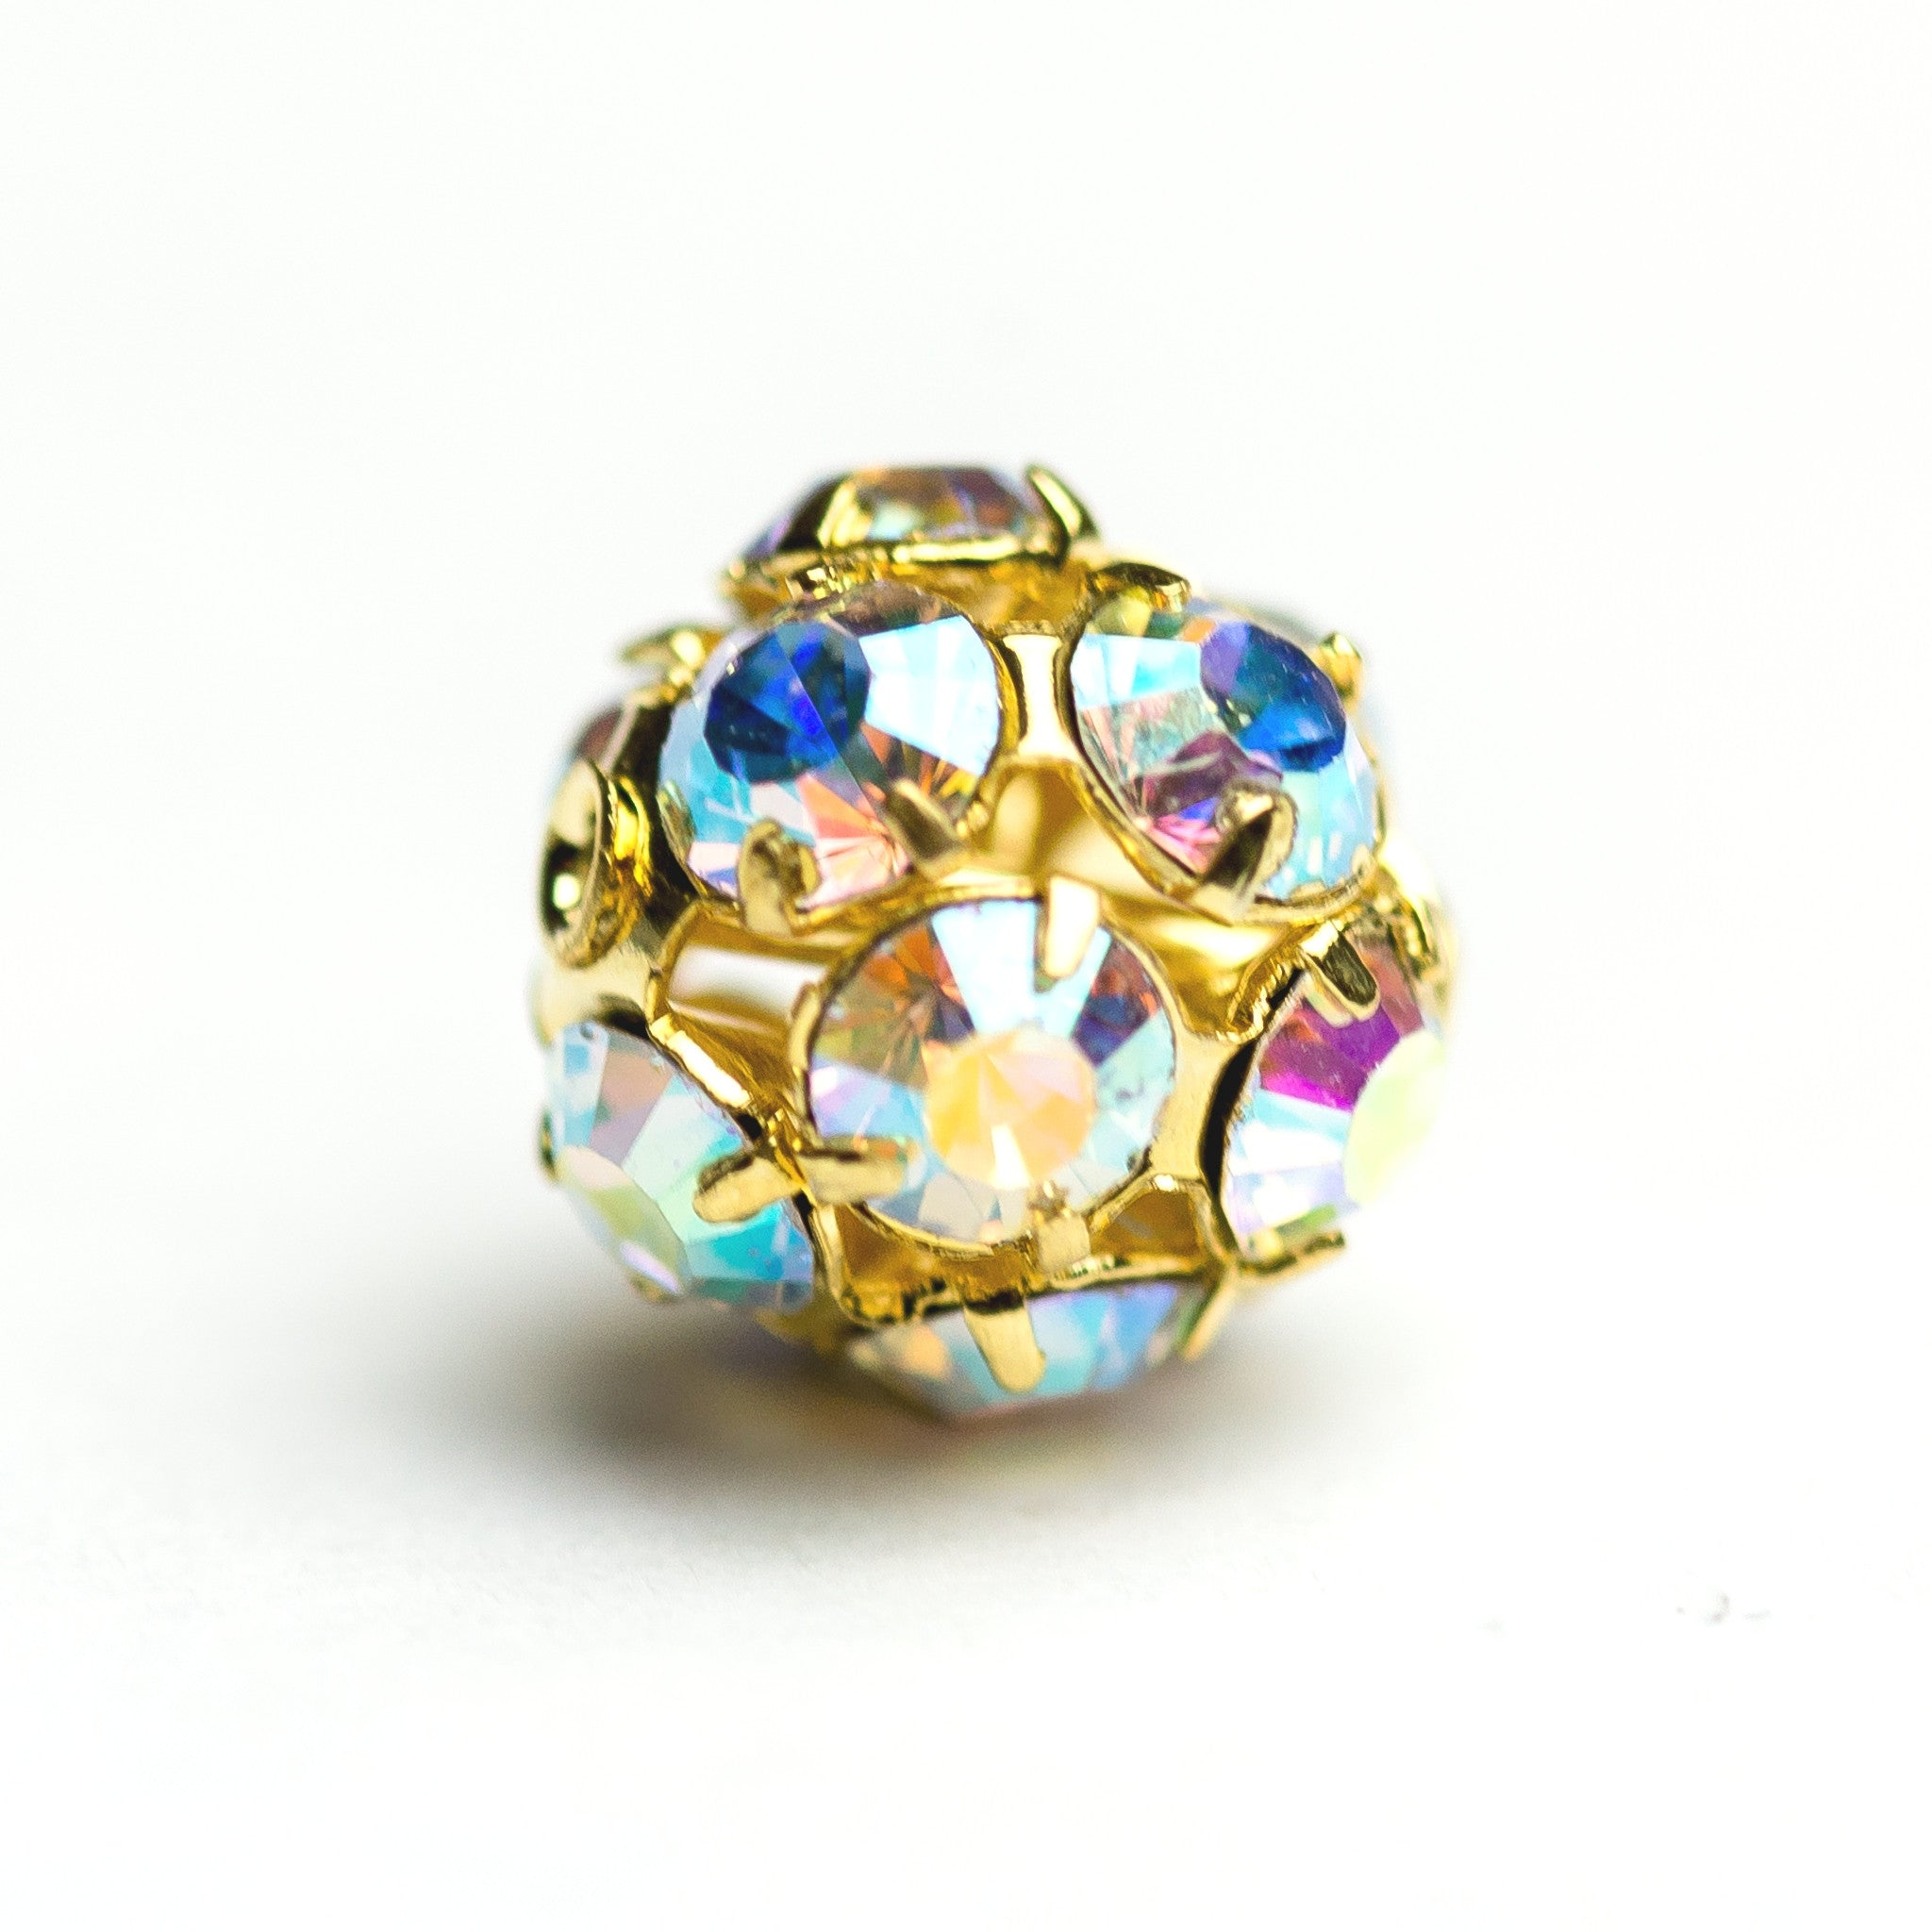 5MM Rhinestone Ball Crystal Ab/Gold (12 pieces)